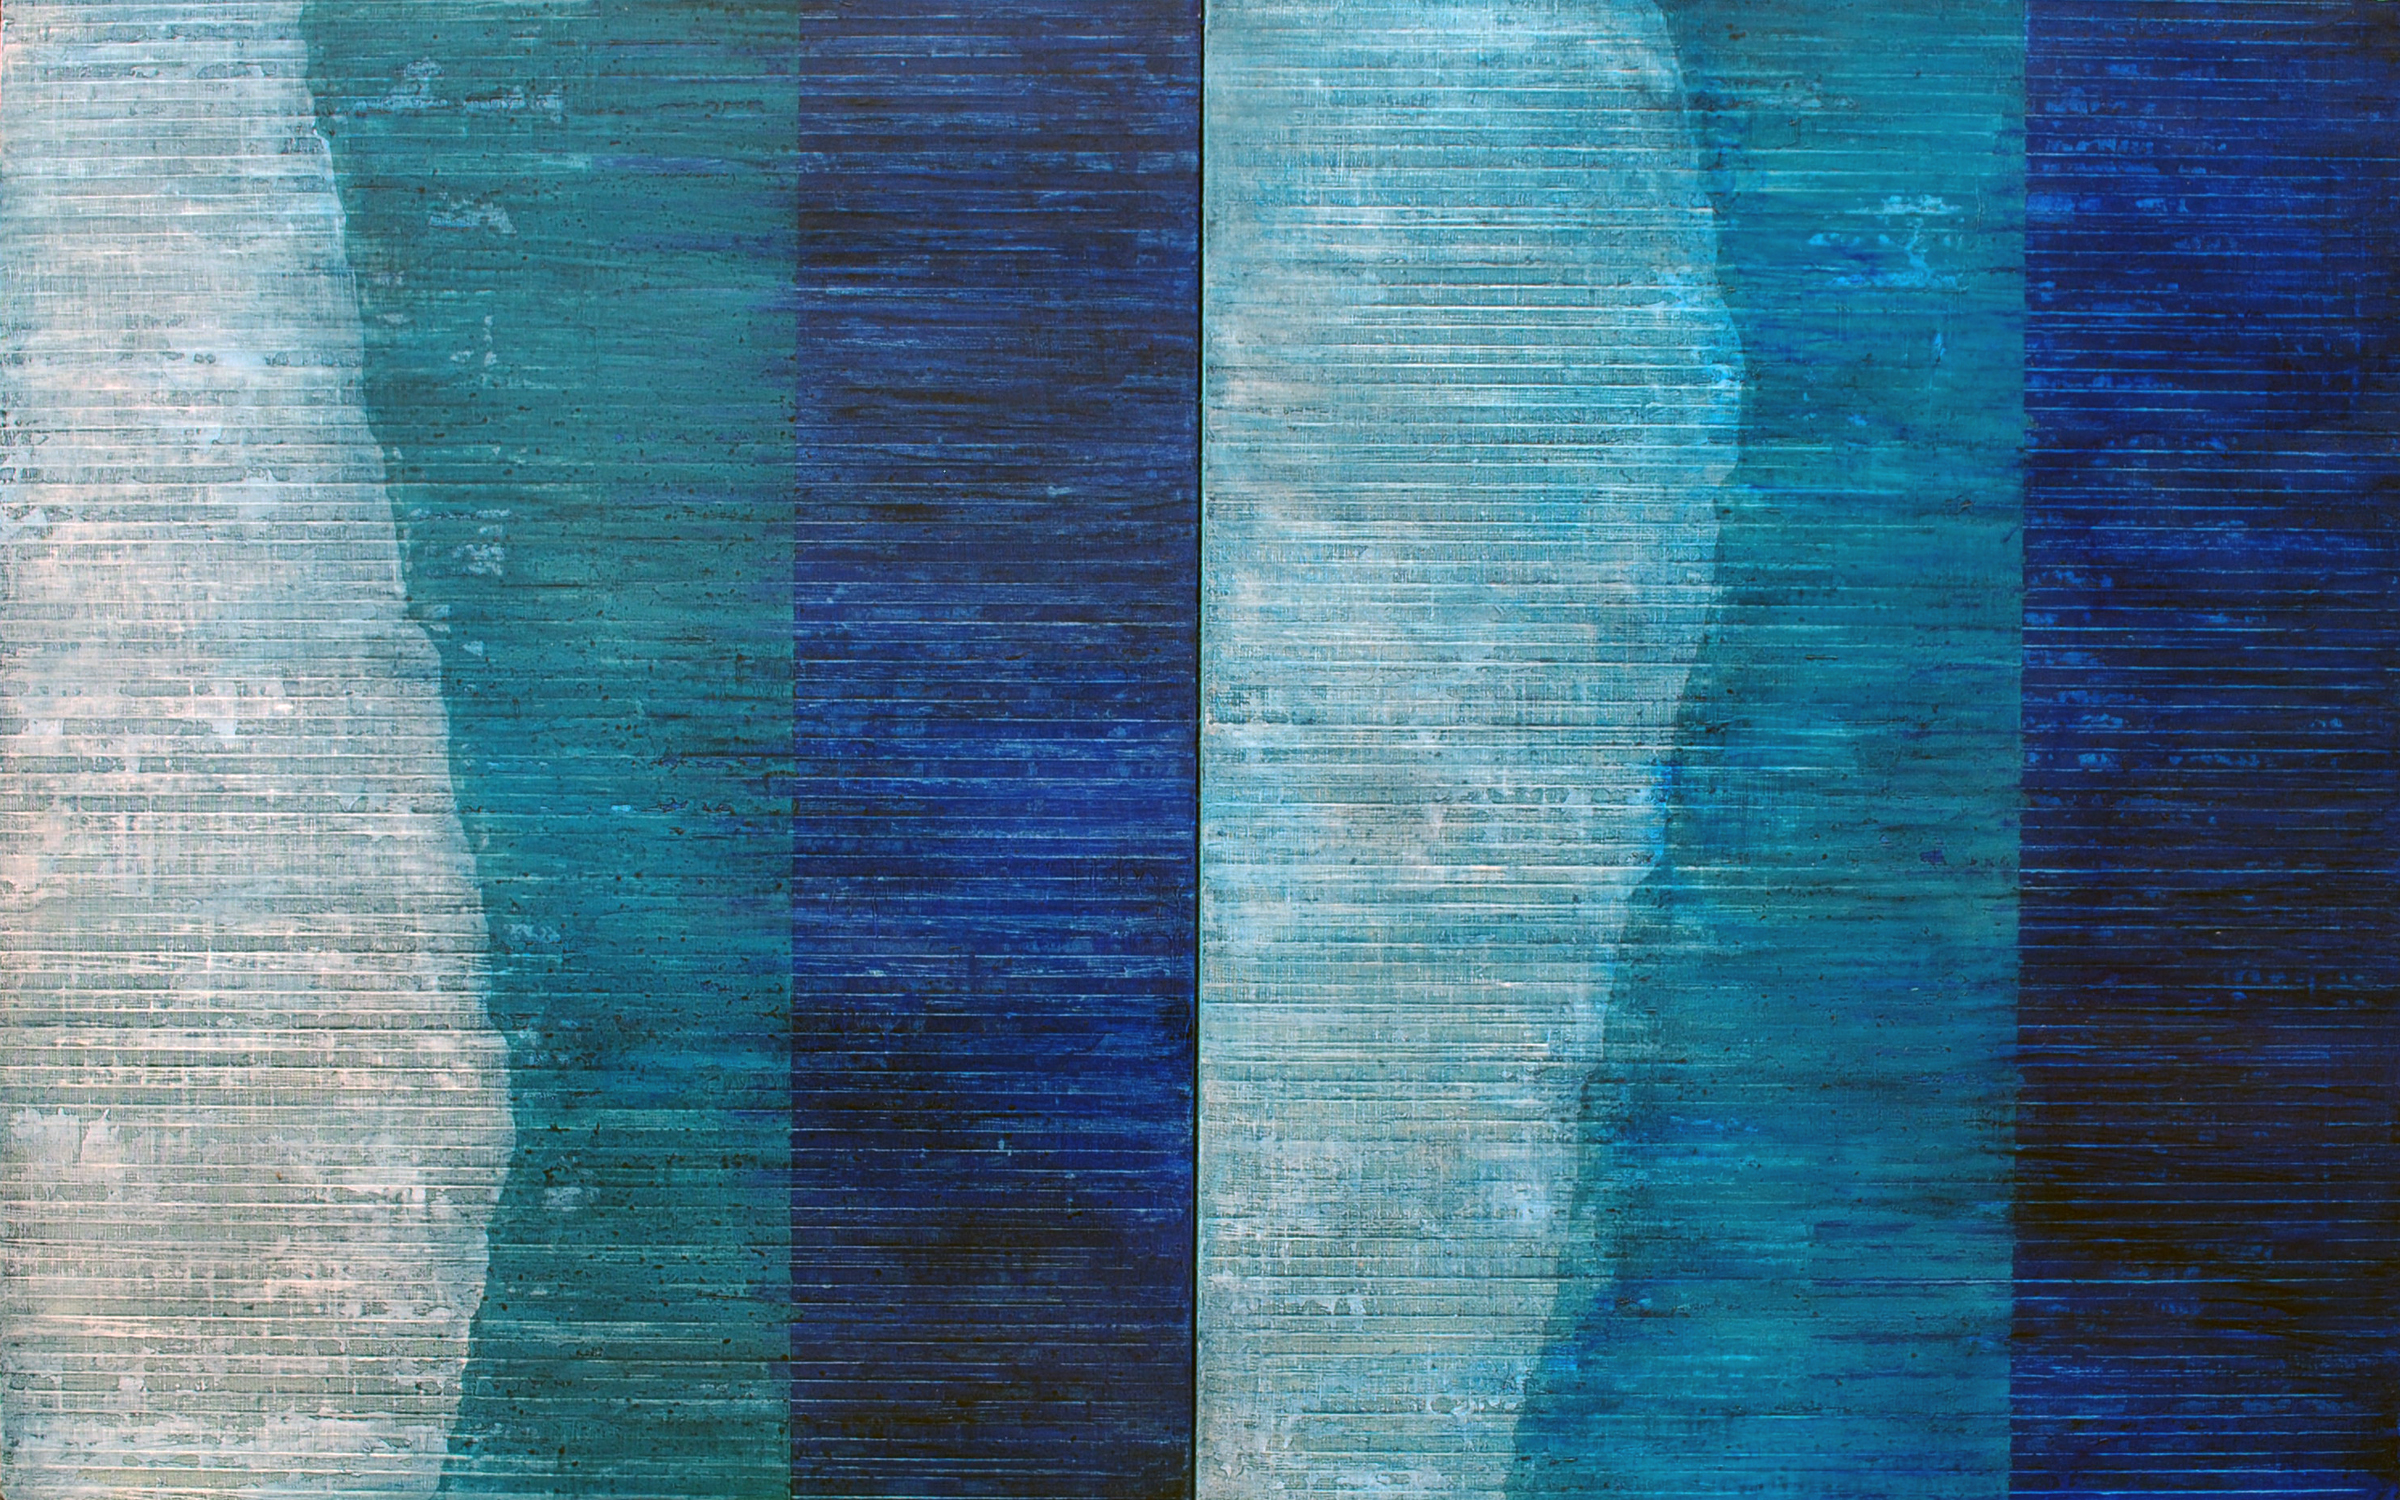 Linea Terminale: 8.12, 2012, Oil on linen over panels, 20 x 36 inches.